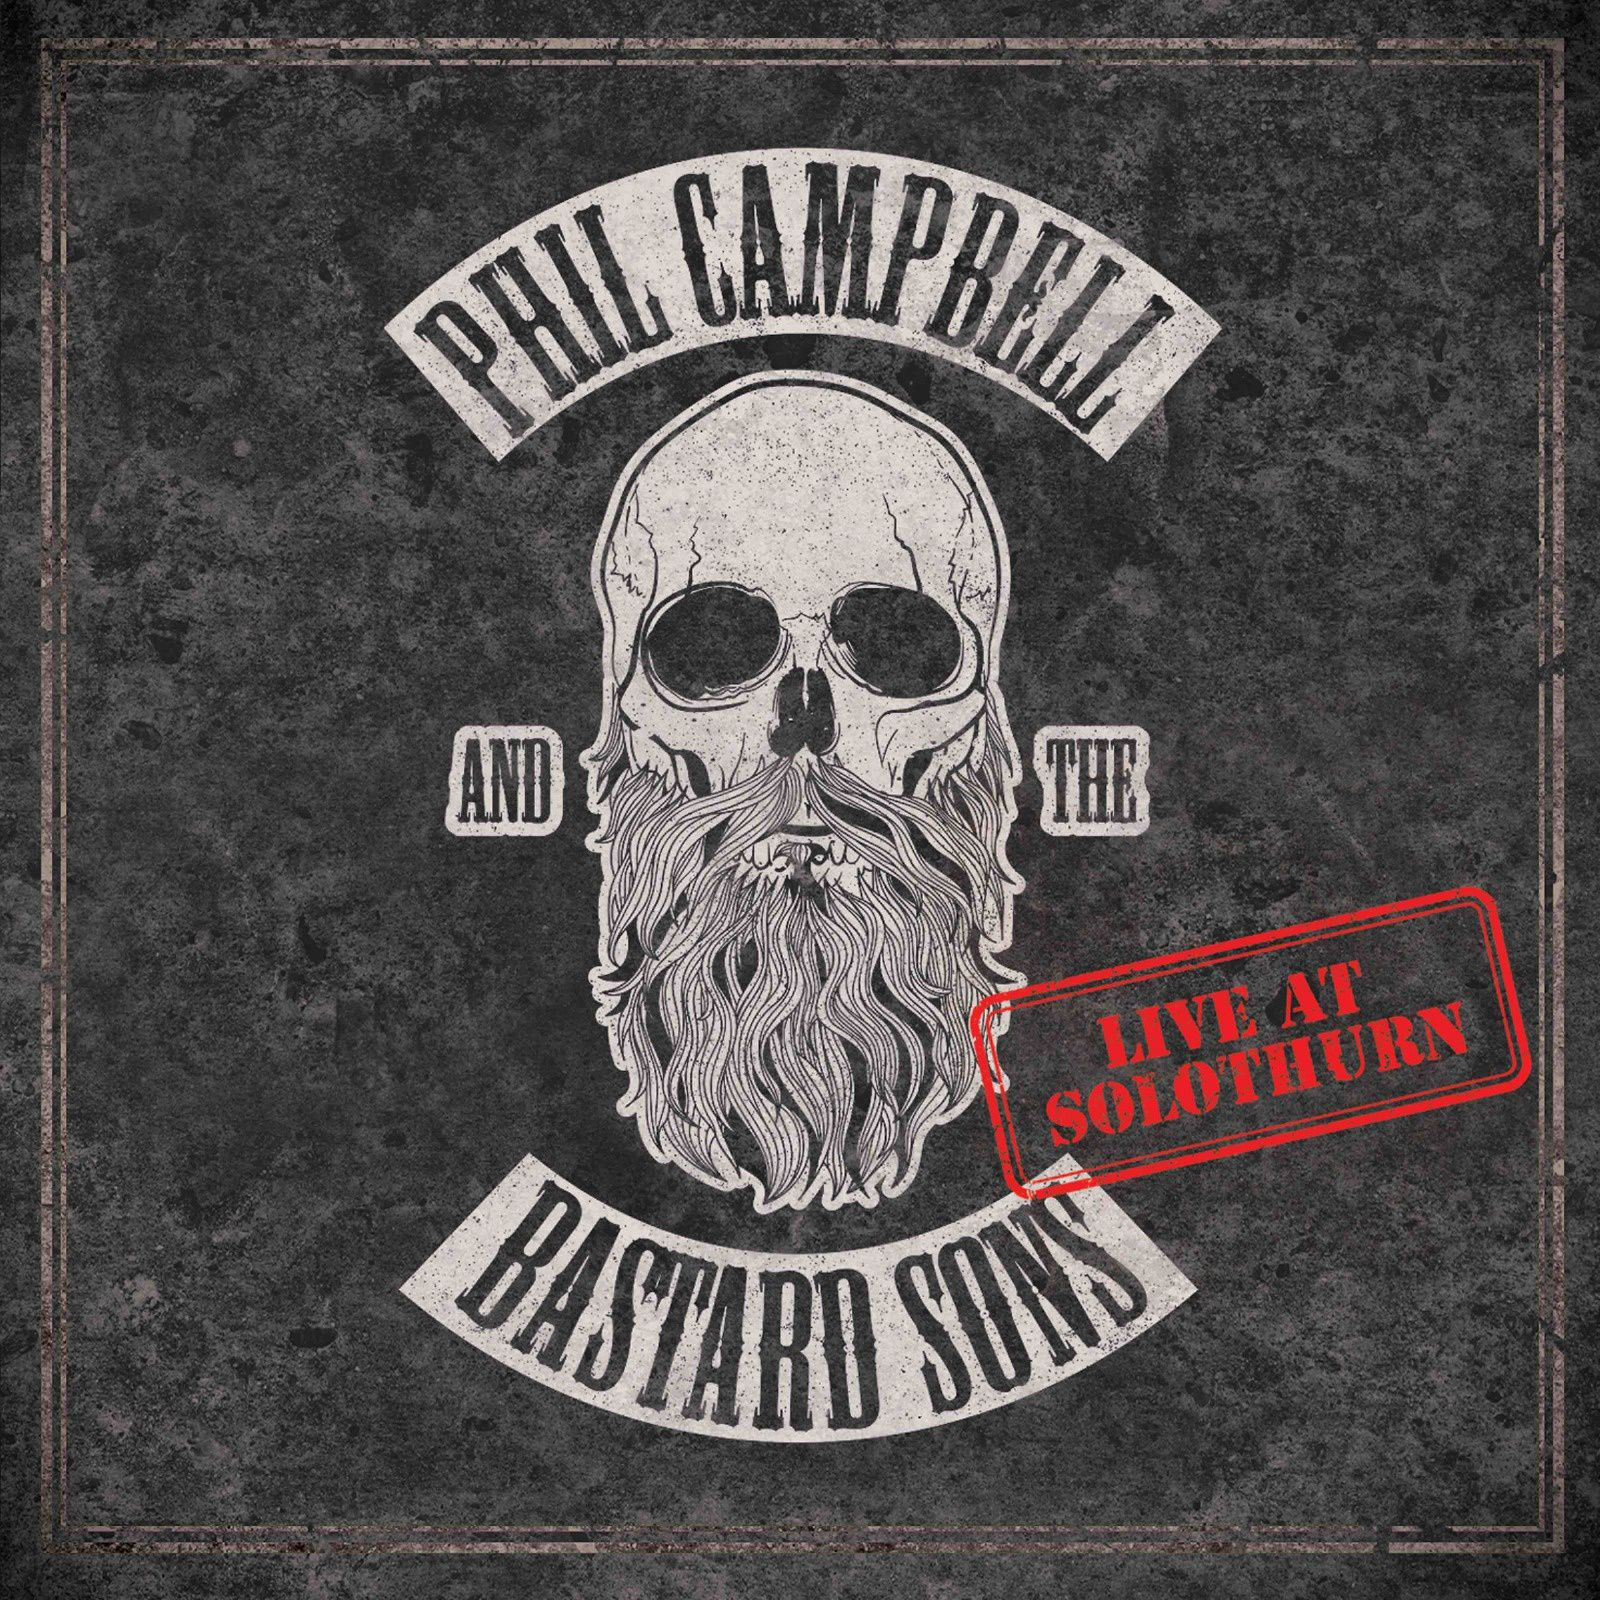 """CD review PHIL CAMPBELL & THEBASTARD SONS """"Live at Solothurn"""""""